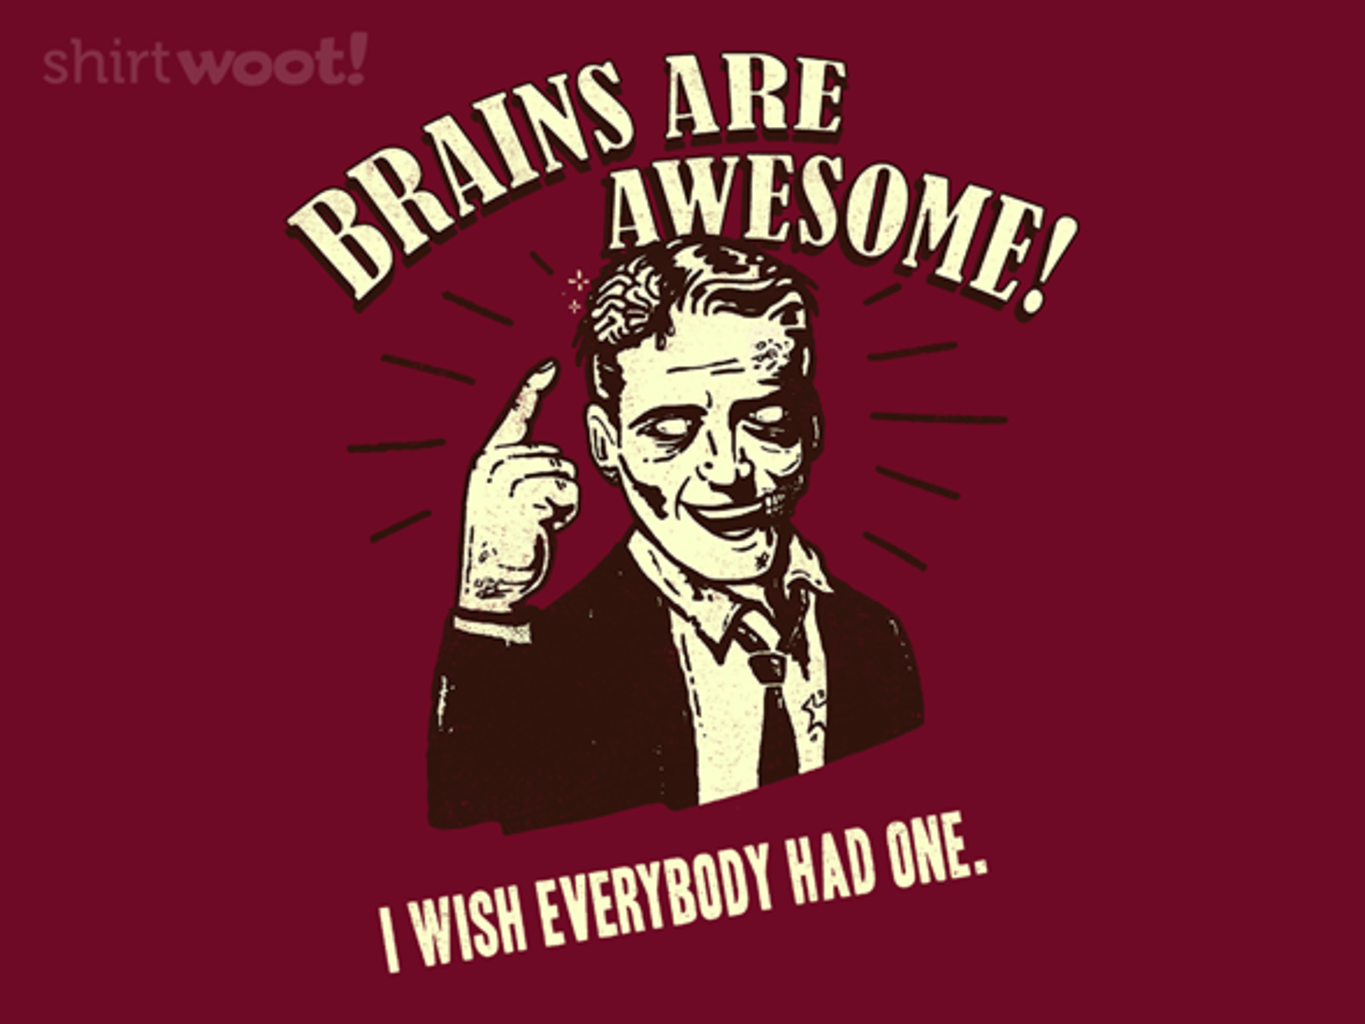 Woot!: Brains are awesome!